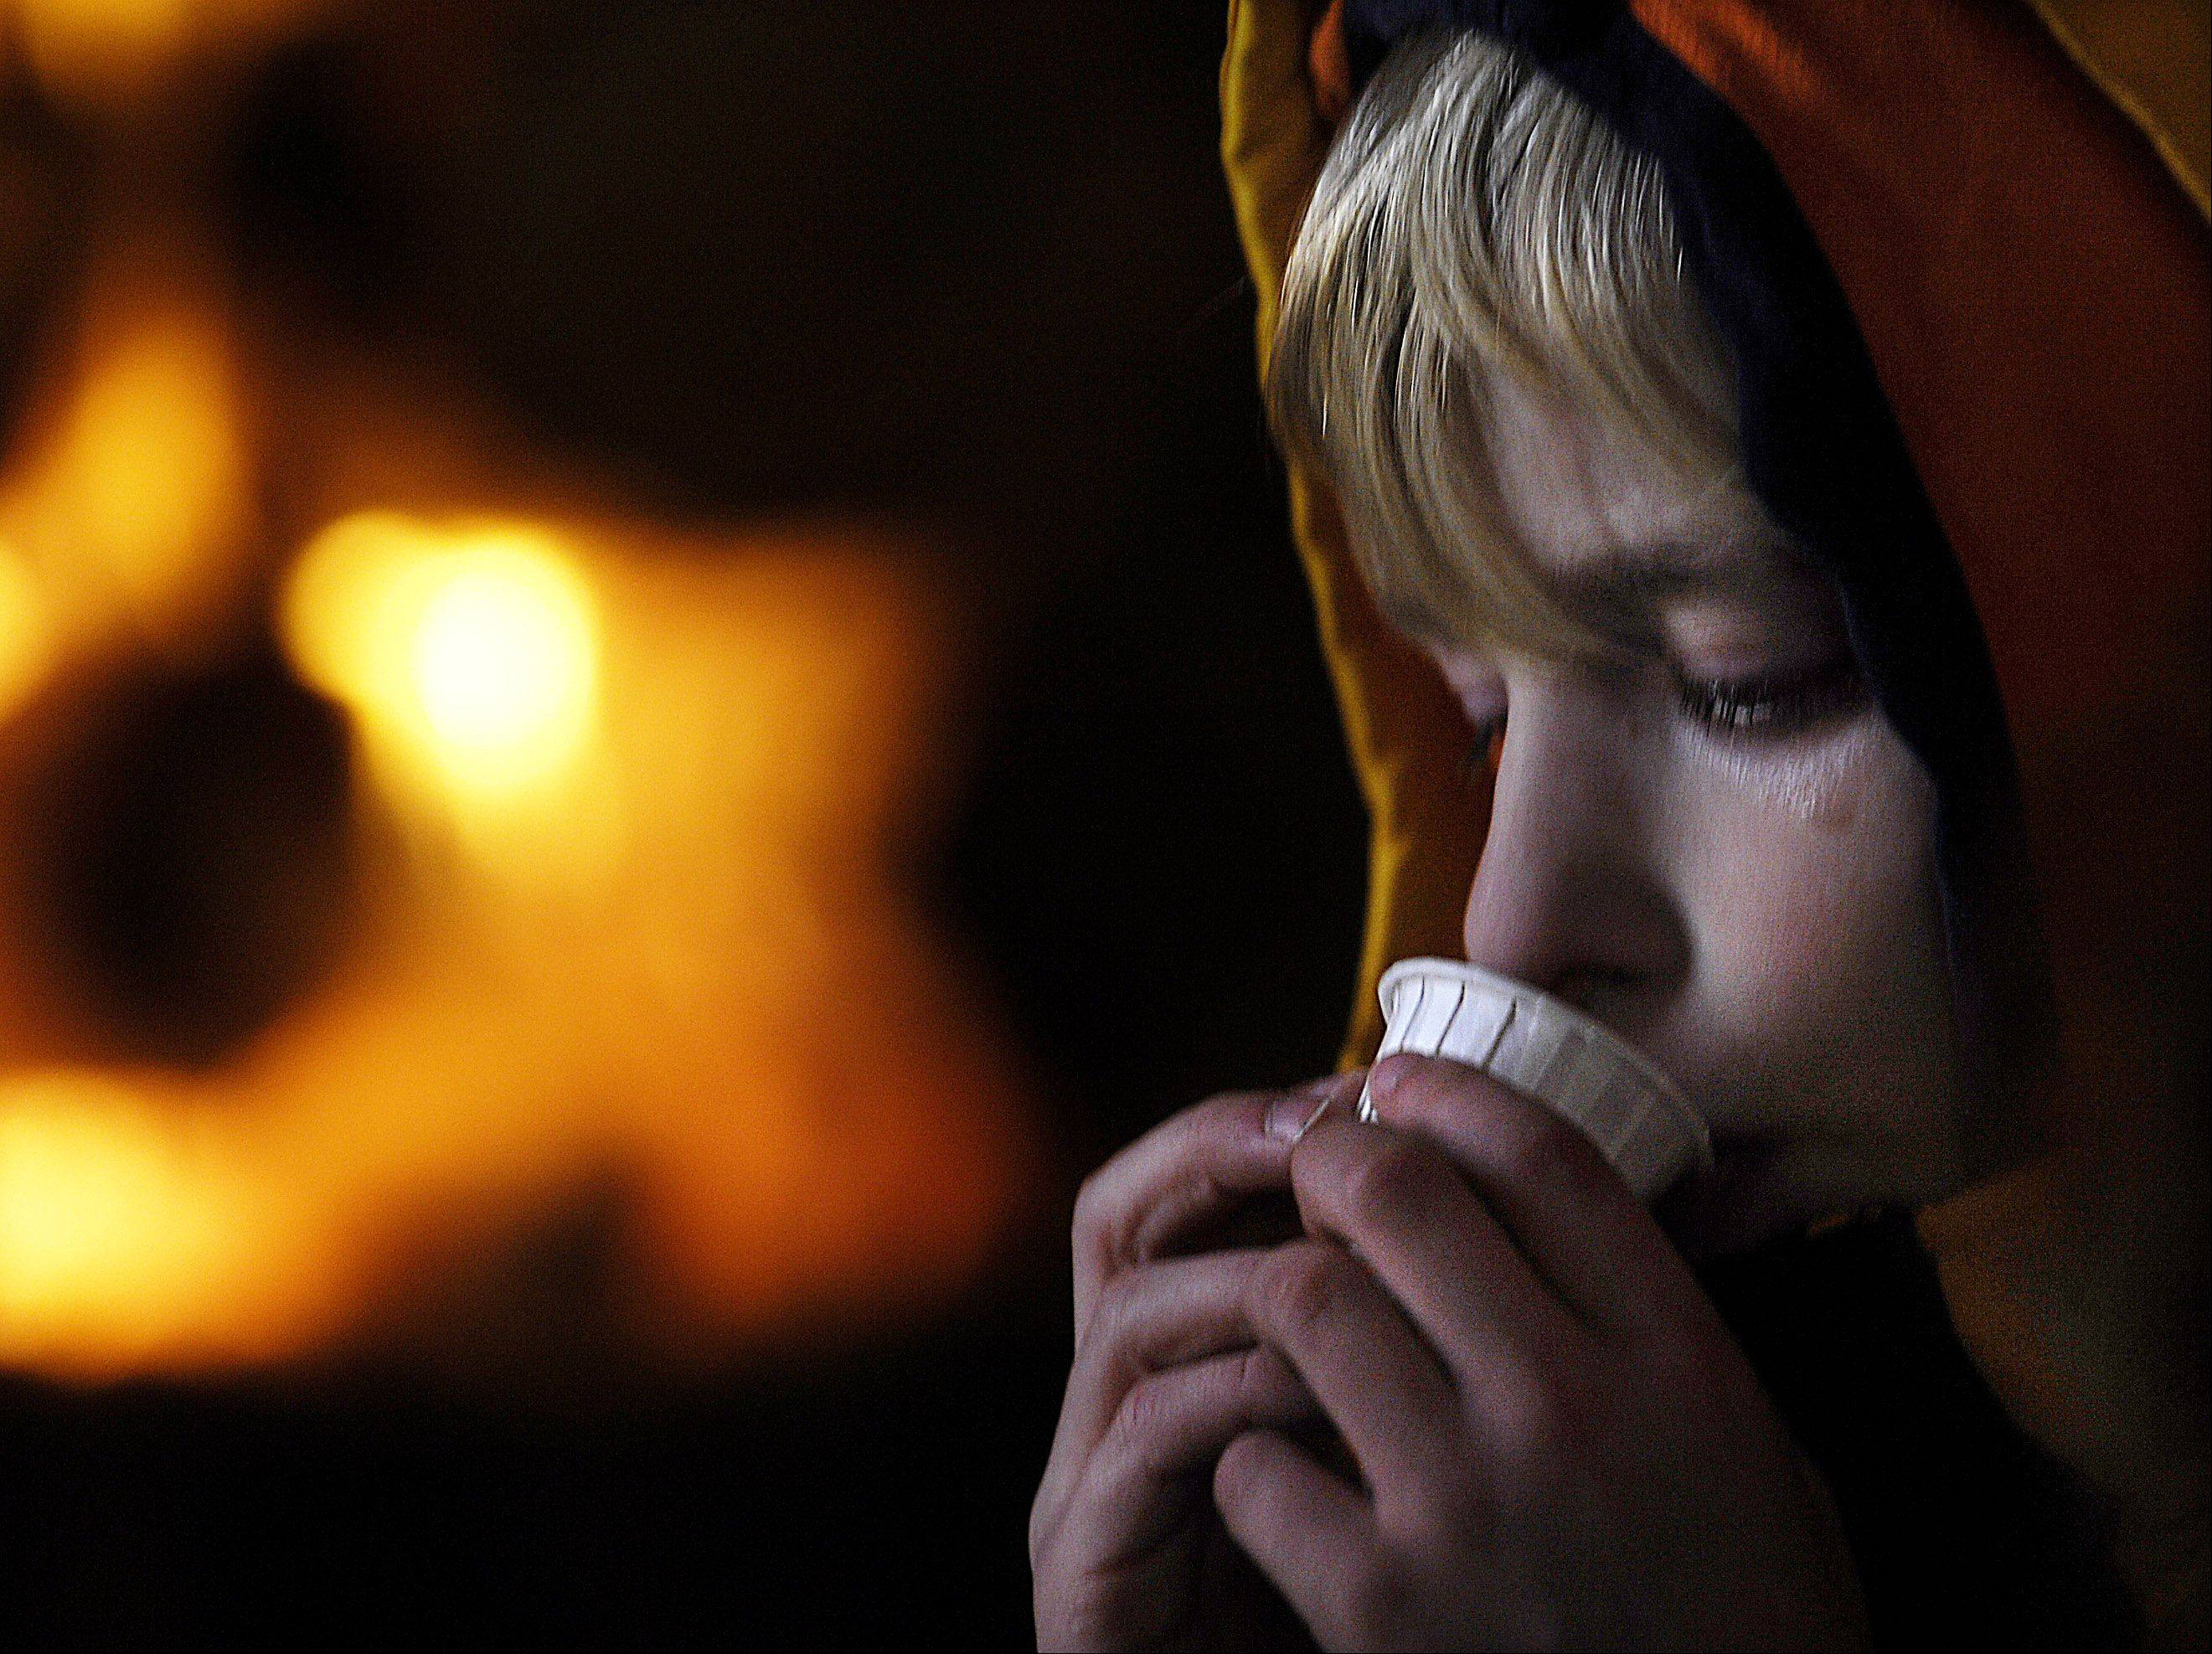 Oberon Scheeler, 7, sips pure maple syrup near a fireplace in the Sugar House during the McHenry County Conservation District's Festival of the Sugar Maples at Coral Woods near Marengo. Oberon was with his sister Tatiana, 4, and mother Renee of Elgin.